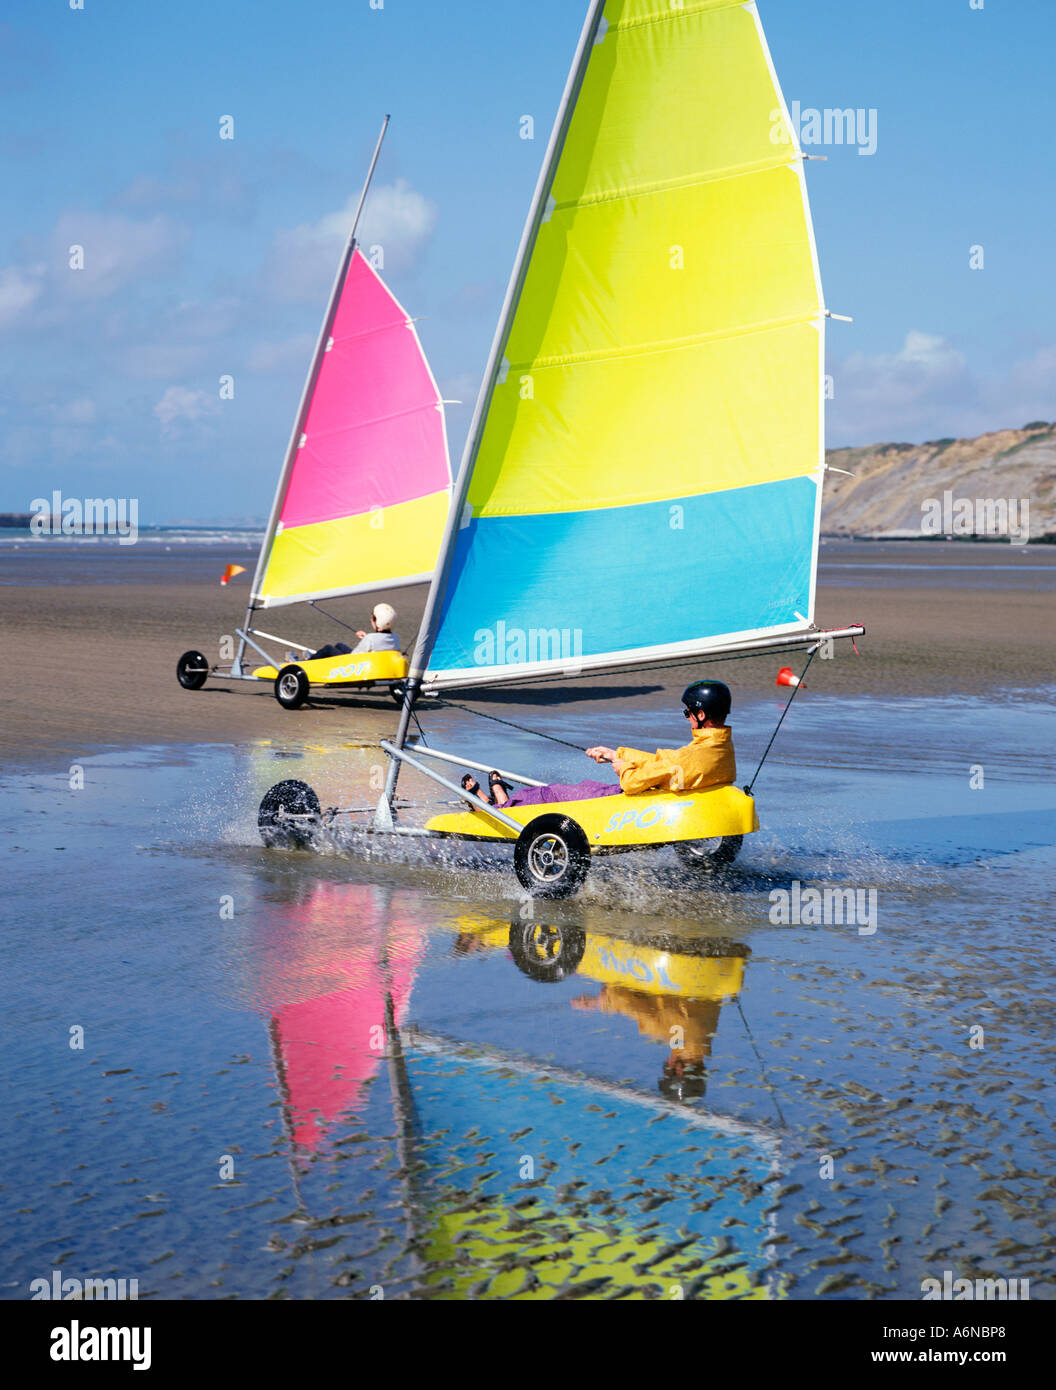 FRANCE NORD PAS DE CALAIS BOULOGNE SAND YACHTING AT THE PLAGE - Stock Image